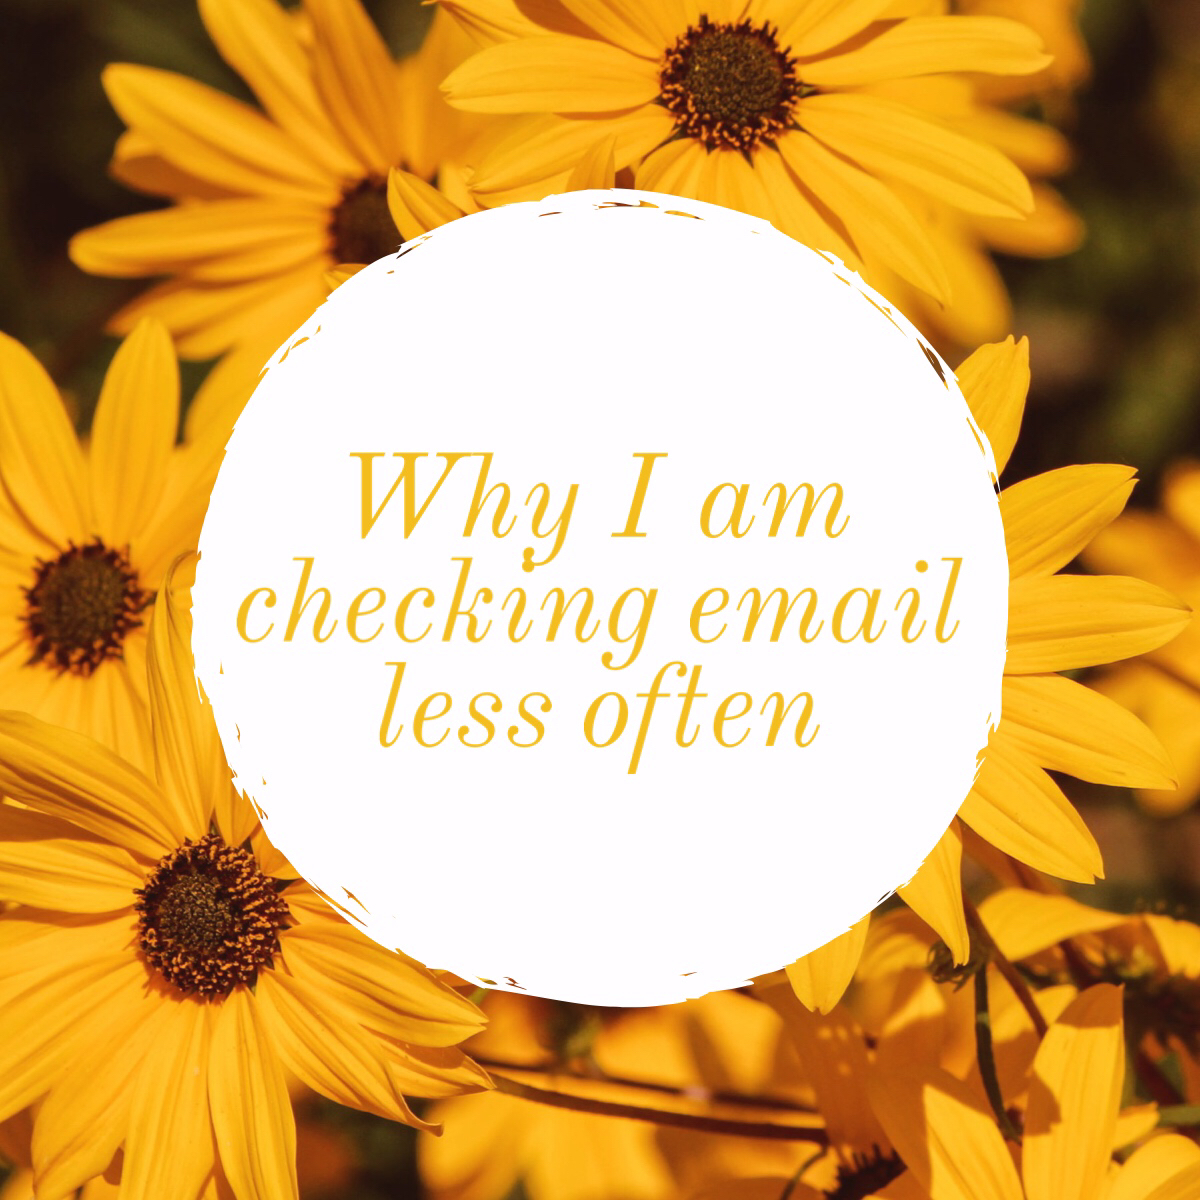 why-I-am-checking-emails-less-often